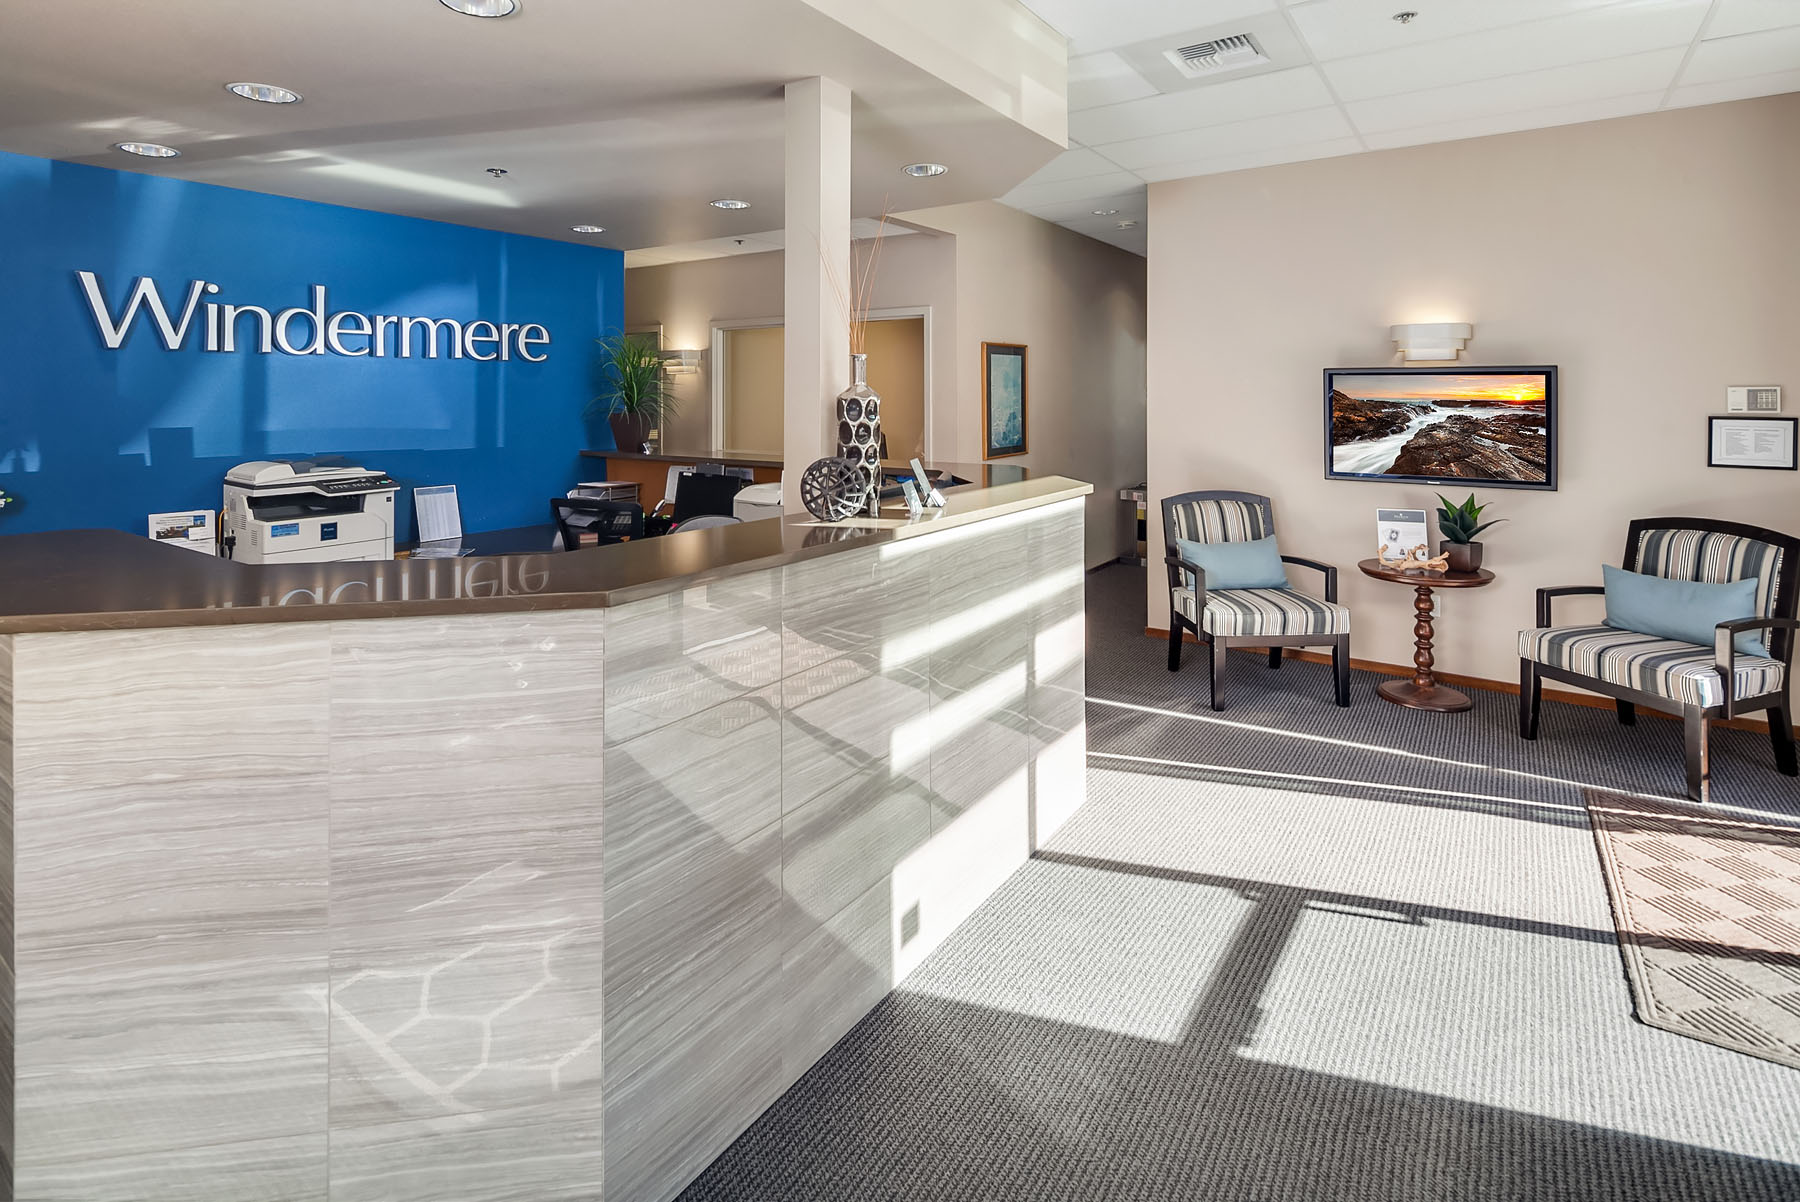 Windermere Real Estate Gig Harbor_Gig Harbor_Washington_Welcome_Lobby